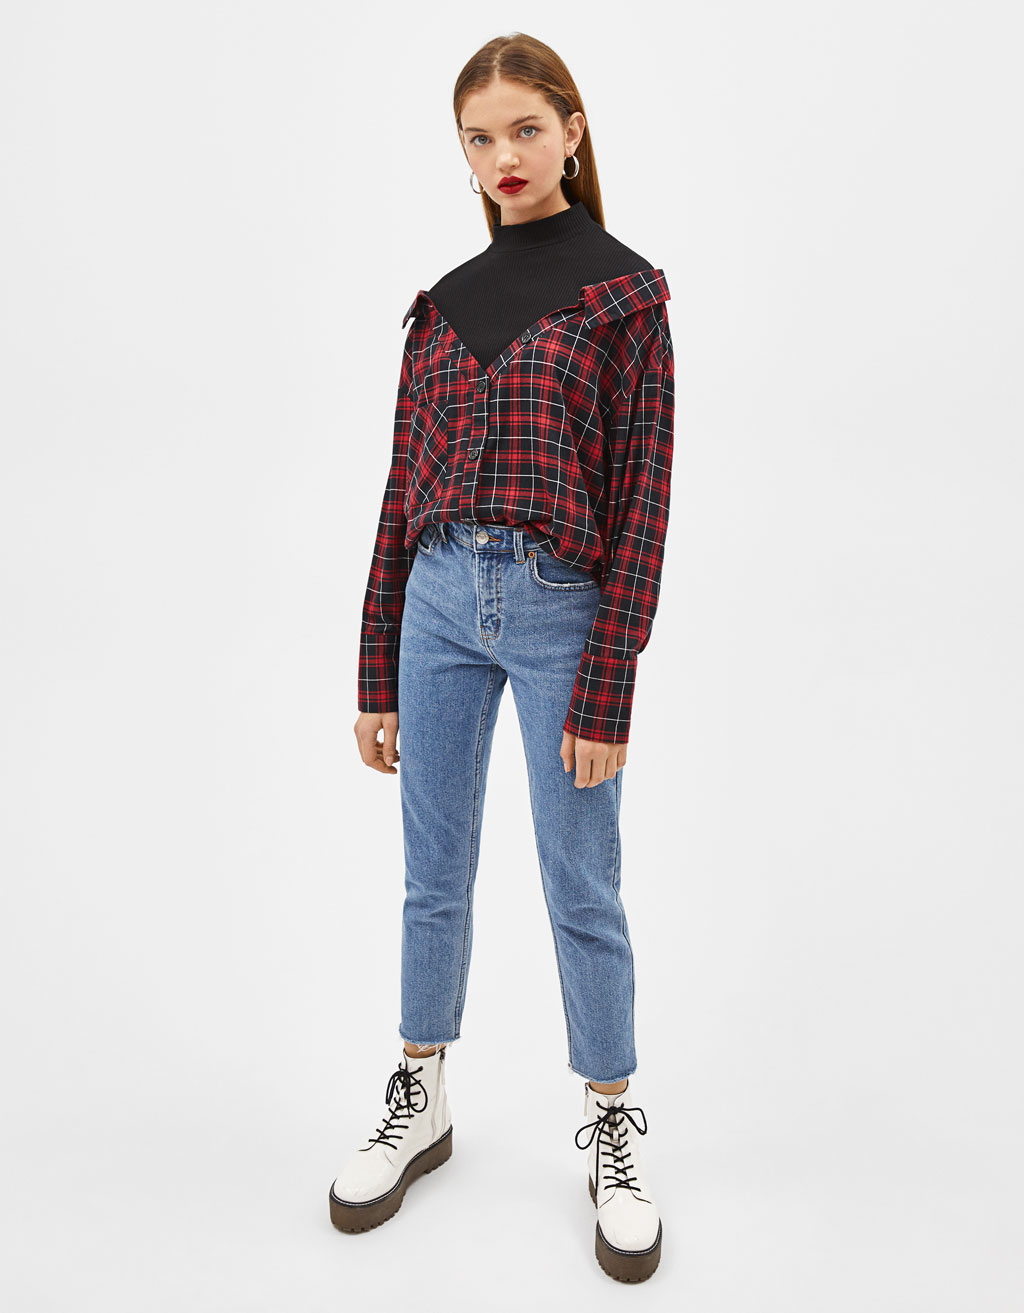 Contrast check shirt